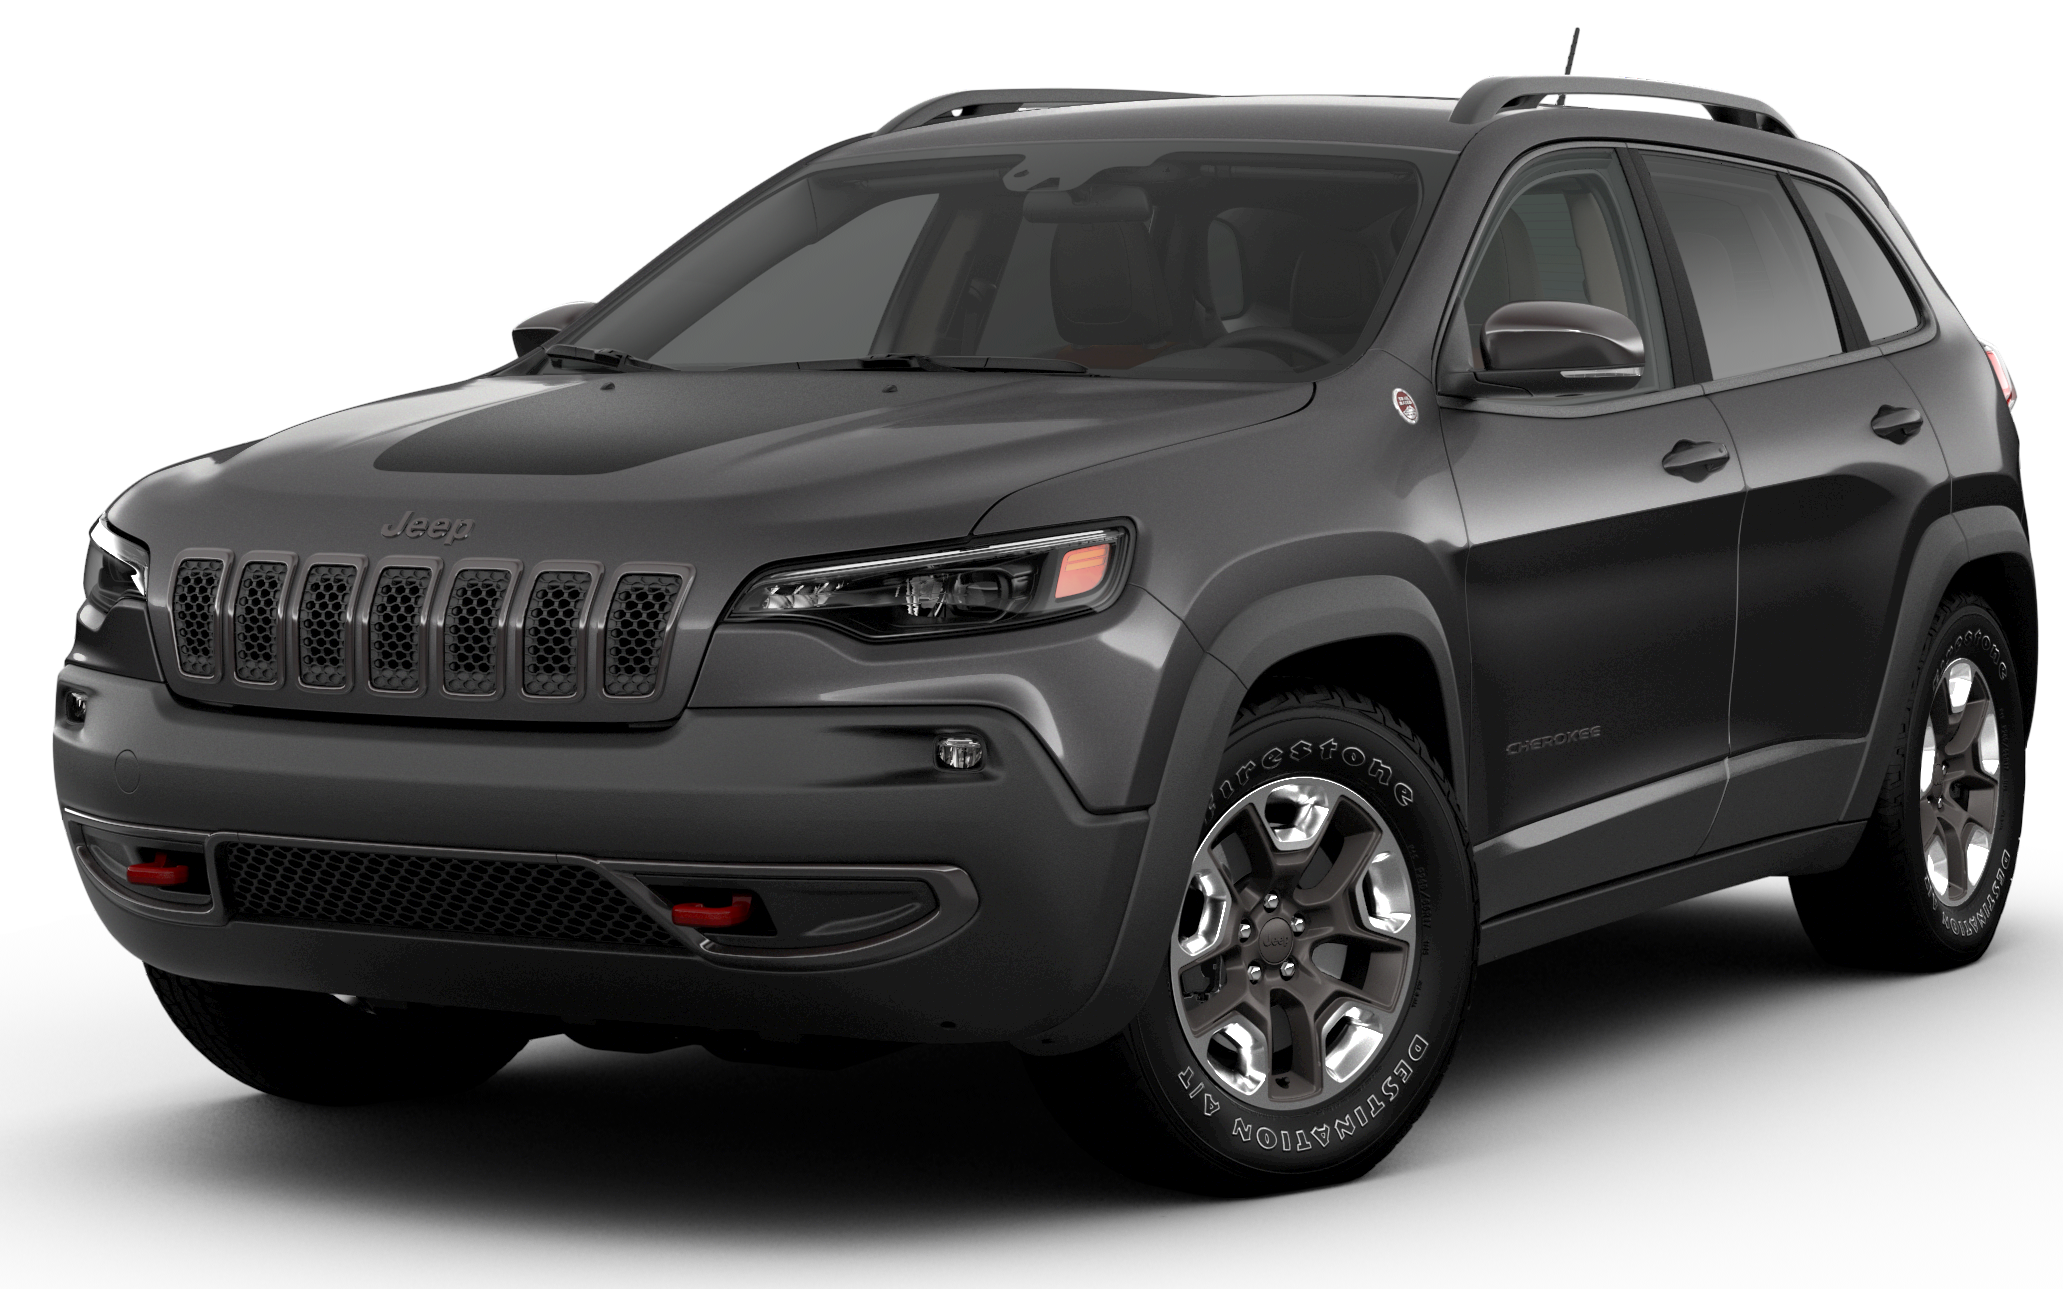 Review & Compare Jeep Cherokee at Larry H. Miller Chrysler Jeep Tucson